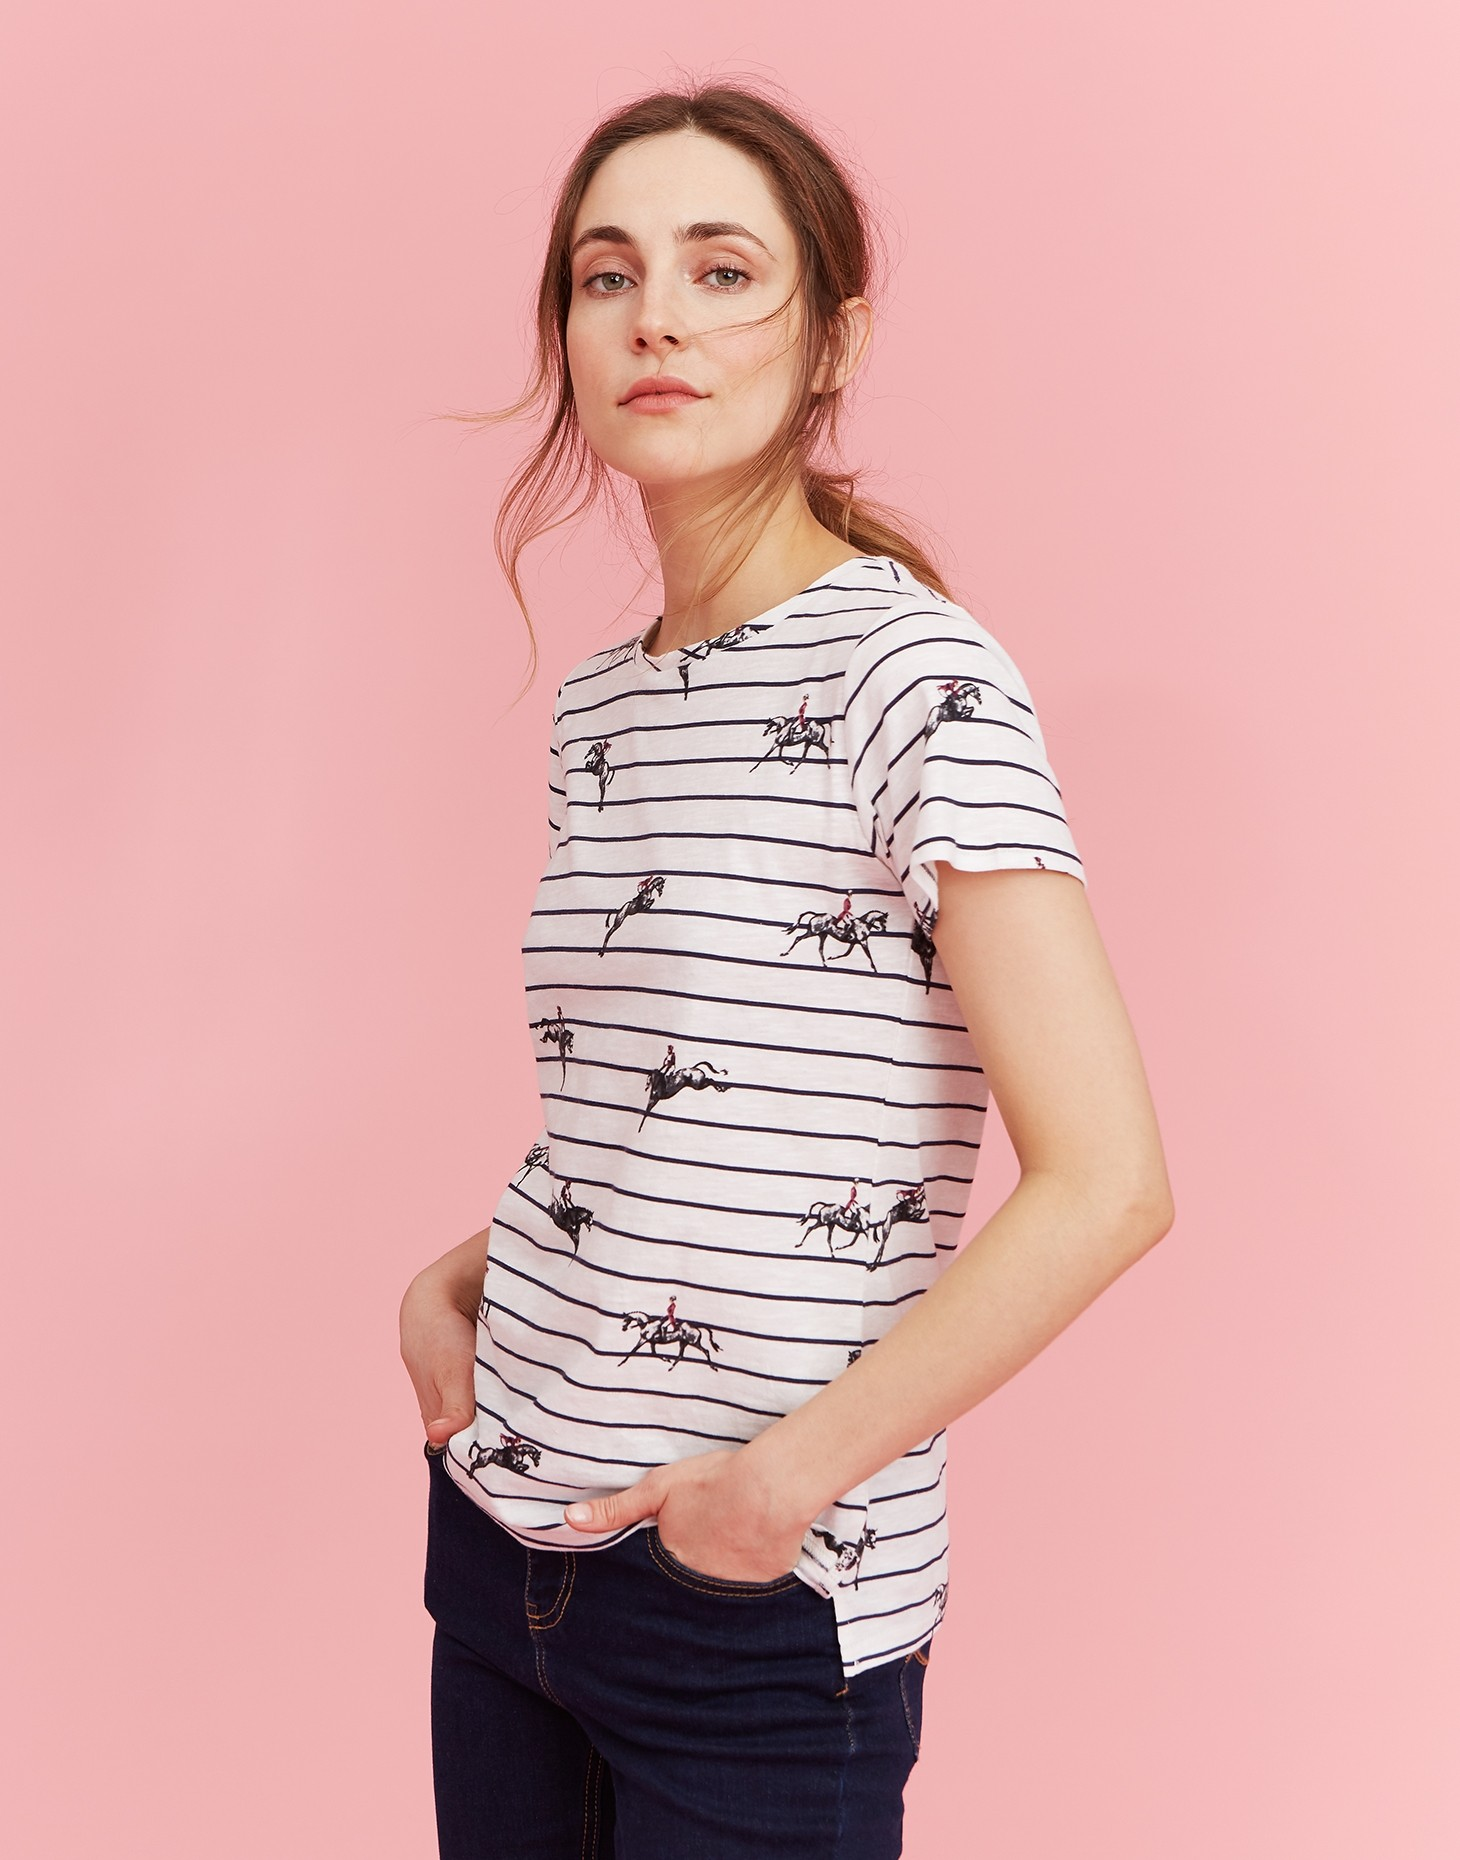 Joules Official Badminton T-Shirt  - Thomas Irving's equestrian and accessories store  Joules Official Badminton Ladies T-Shirt